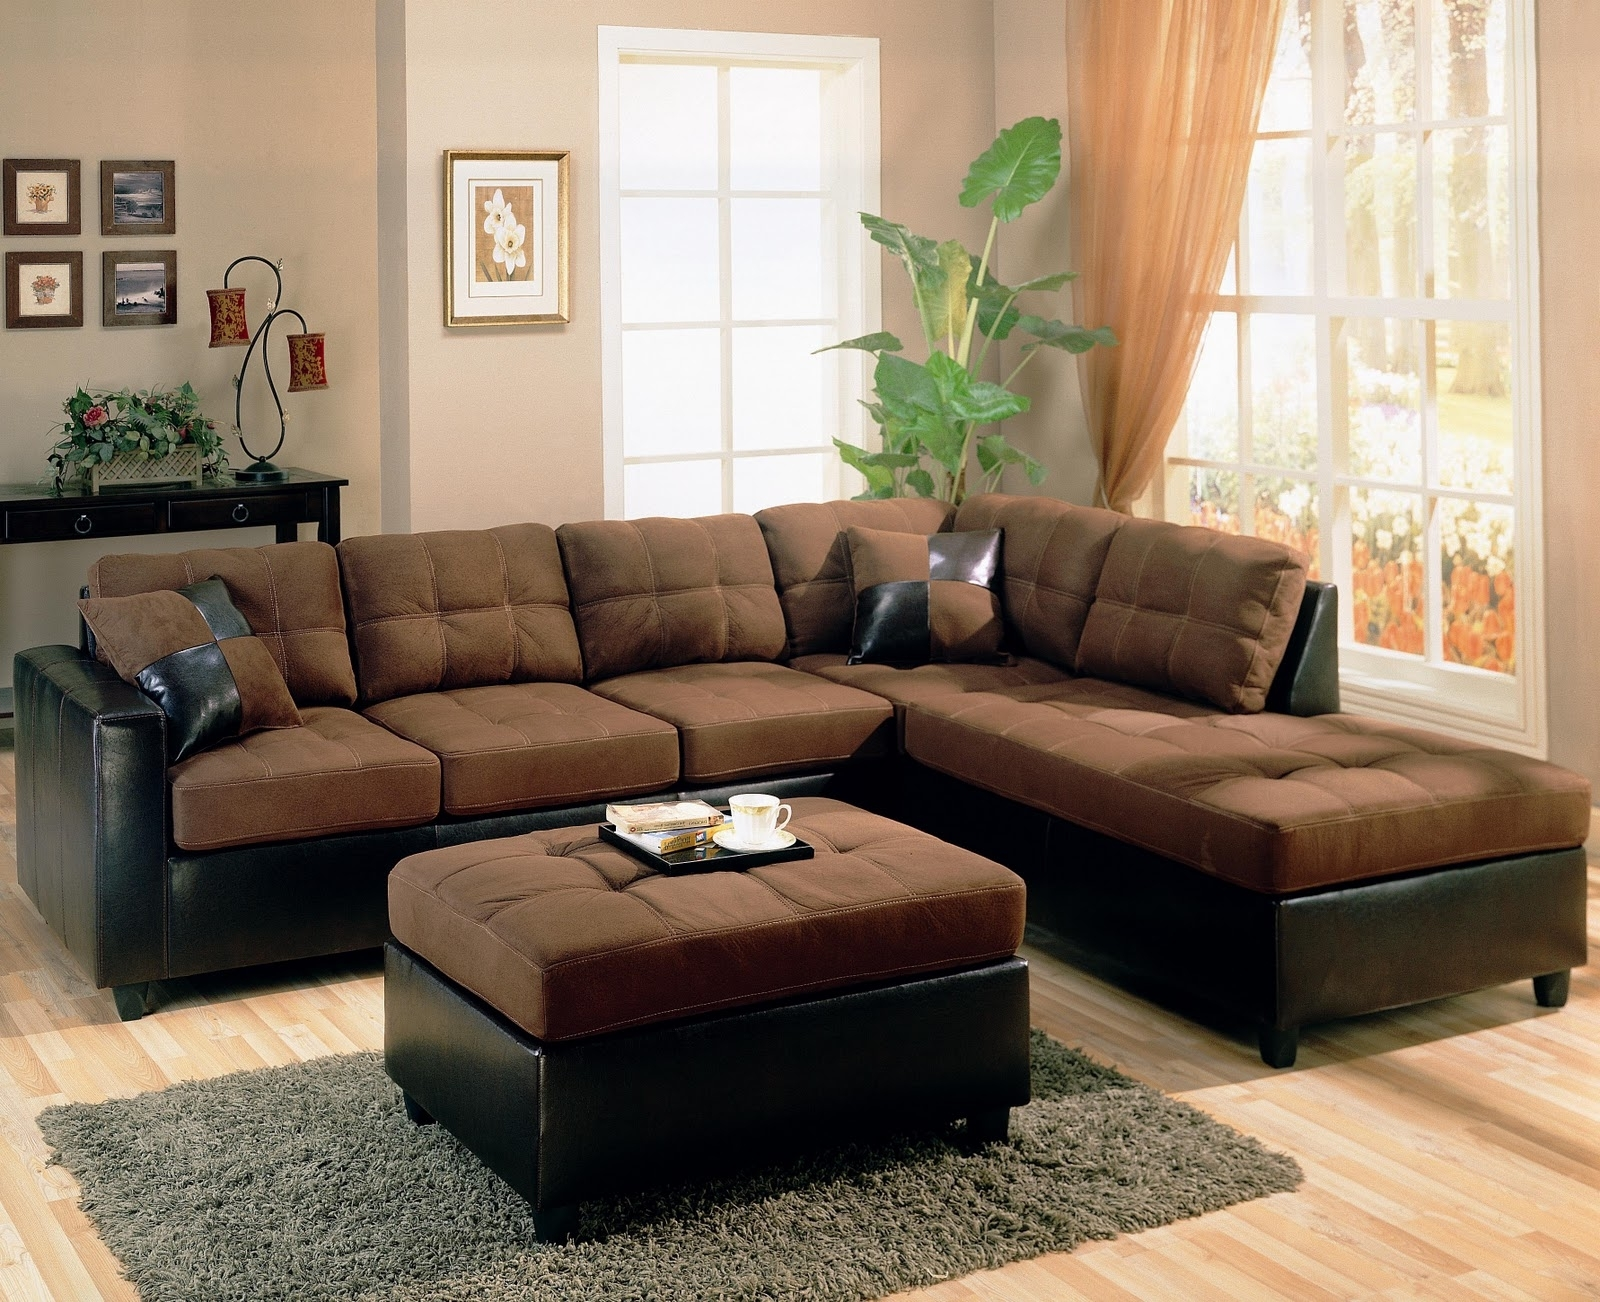 Royal Furniture Outlet Intended For Royal Furniture Sectional Sofas (View 10 of 15)